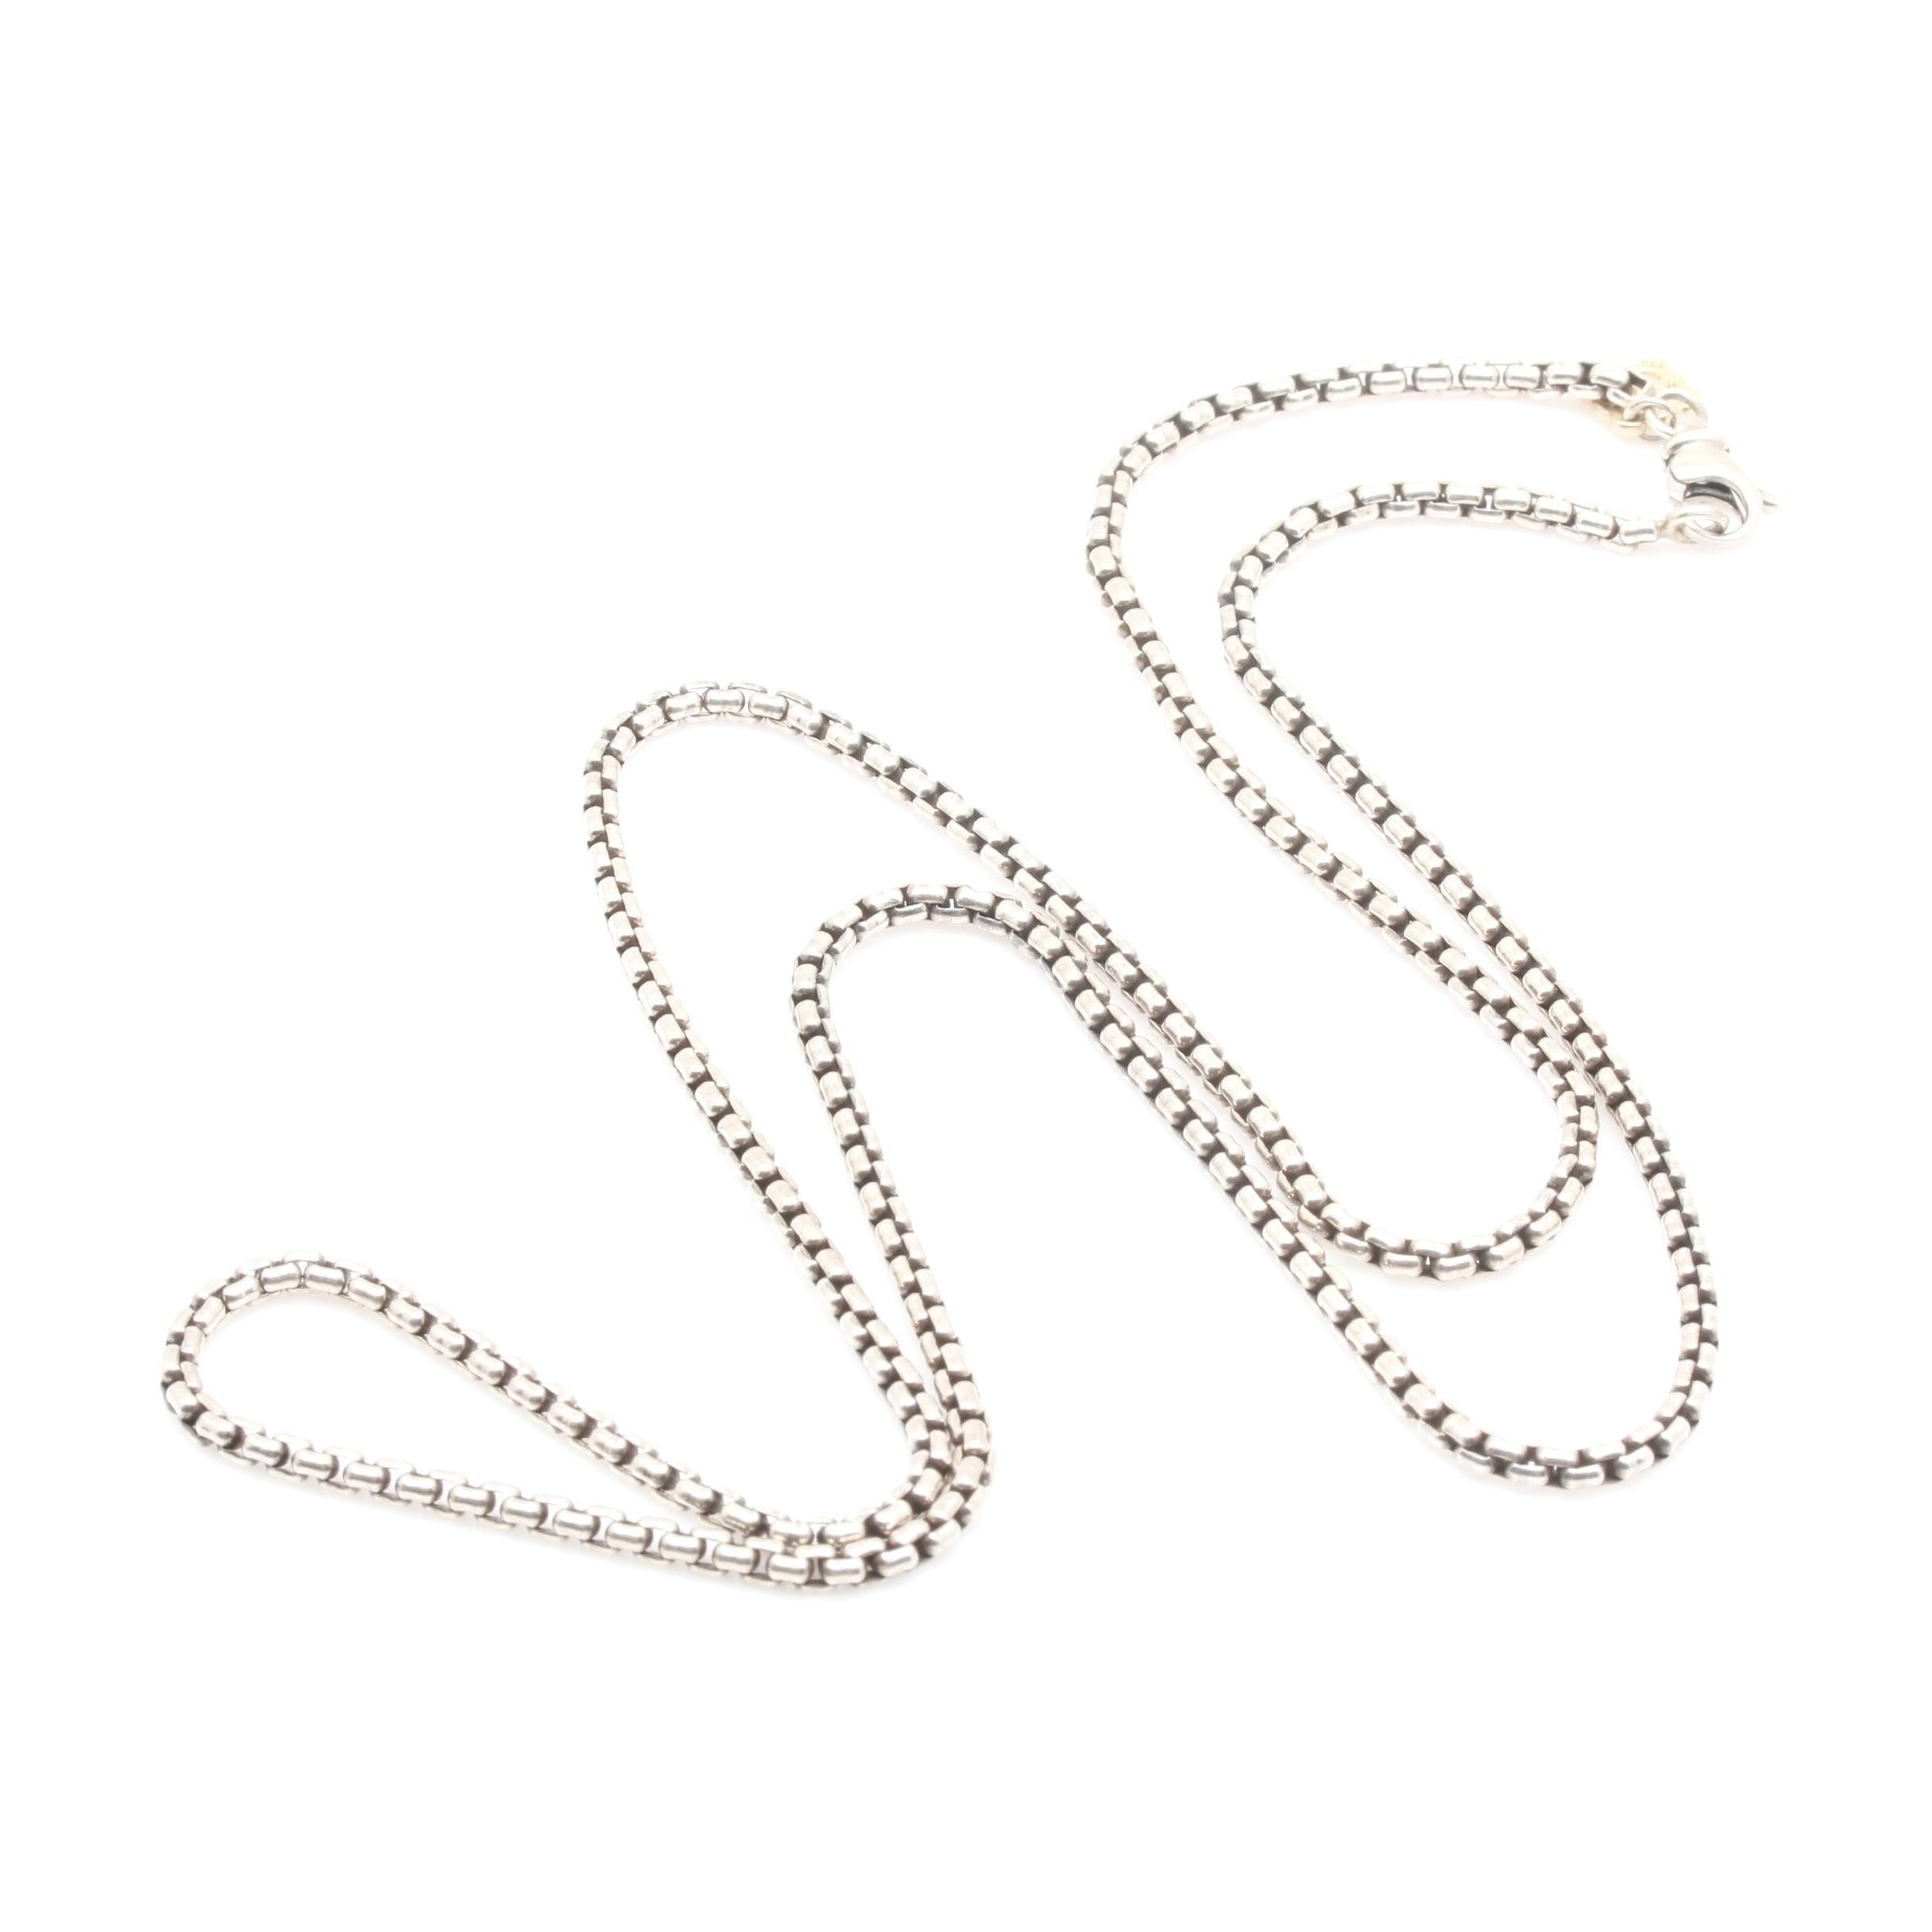 David Yurman Sterling Silver Necklace